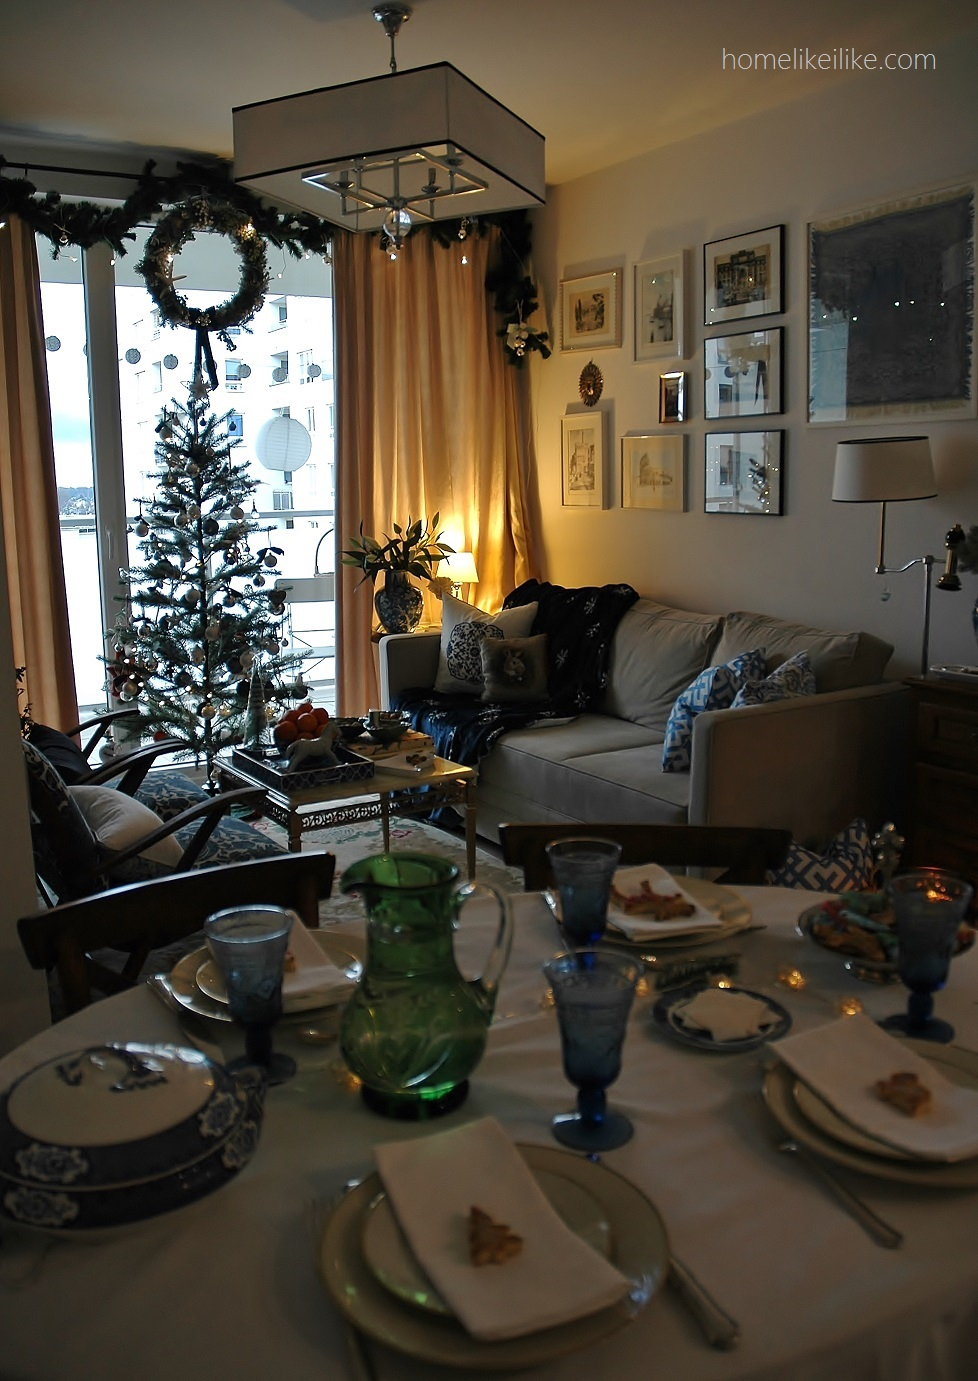 christmas styling - homelikeilike.com